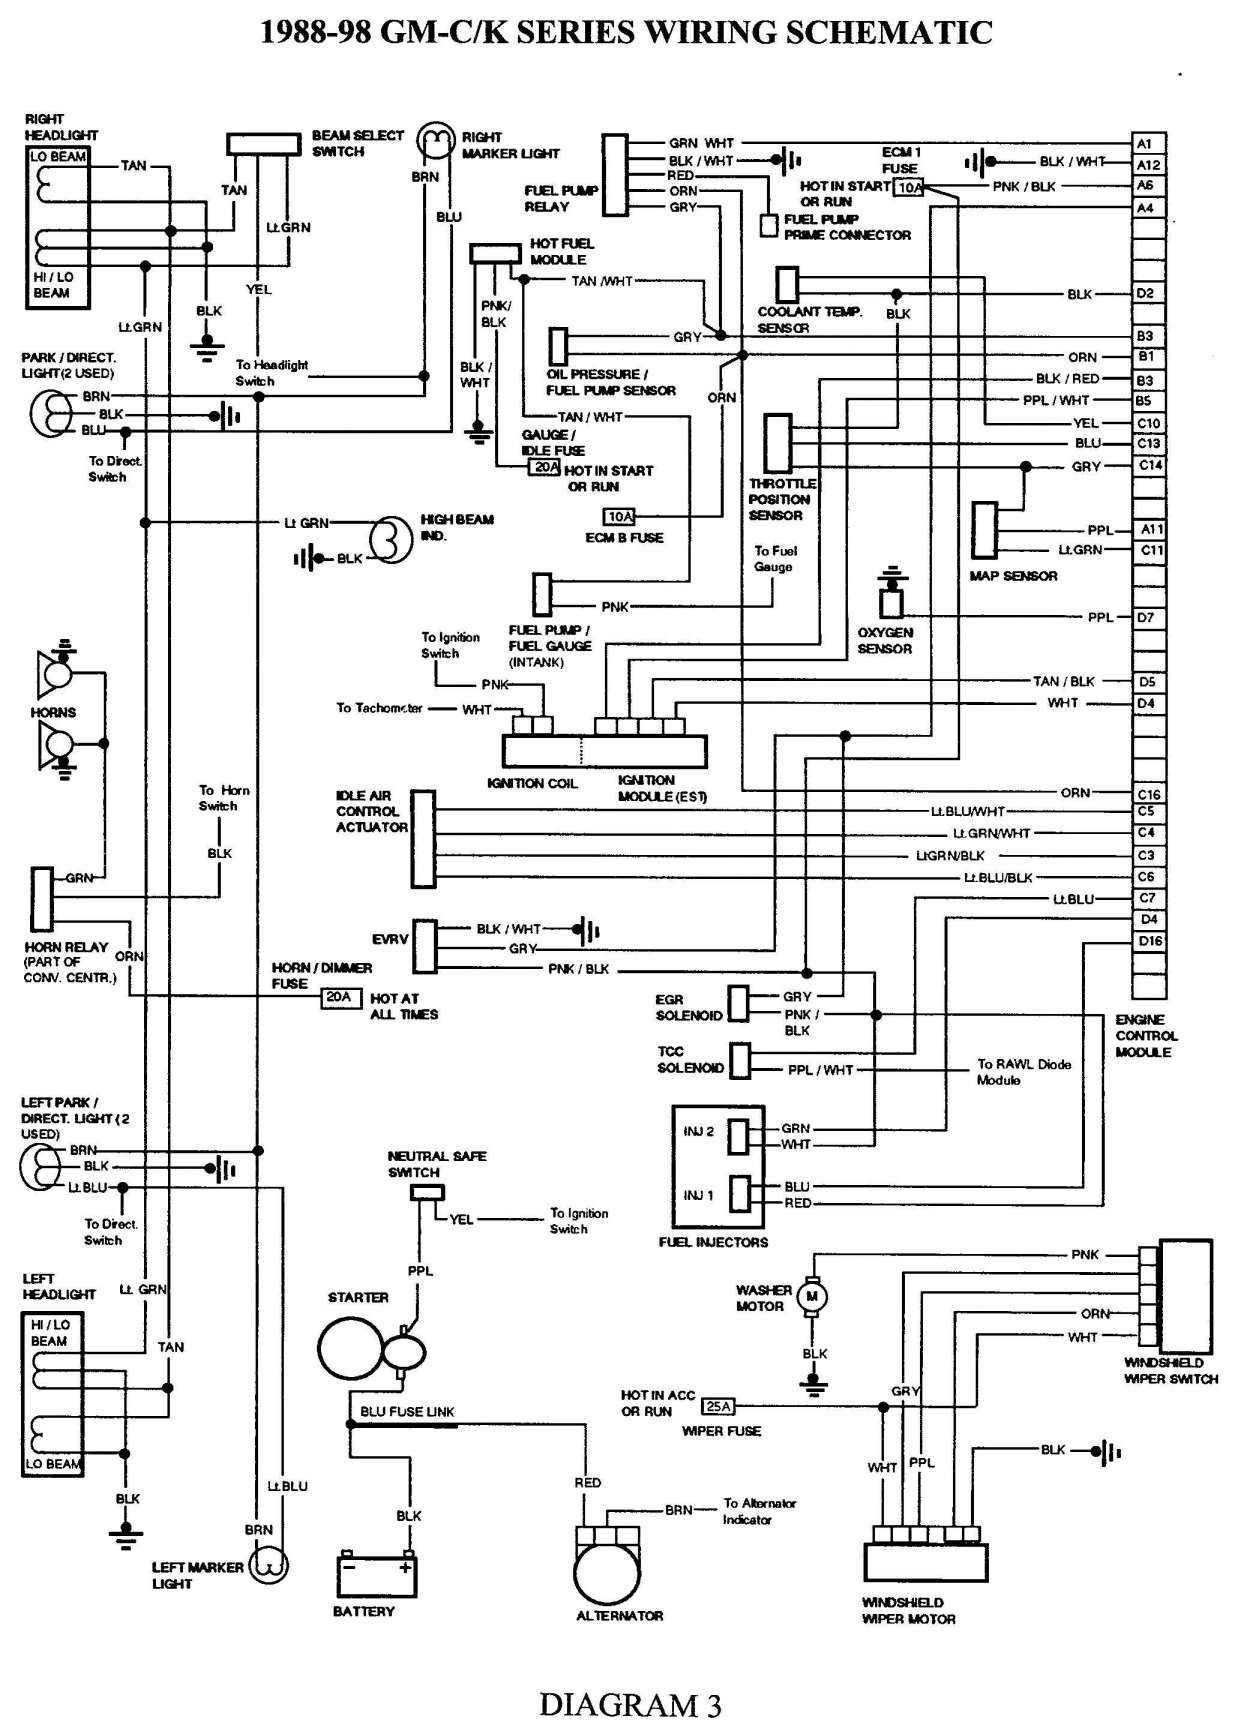 12+ 1988 Chevy Truck Wiring Diagram - Truck Diagram - Wiringg.net in 2020 |  Electrical diagram, 1986 chevy truck, Electrical wiring diagramPinterest